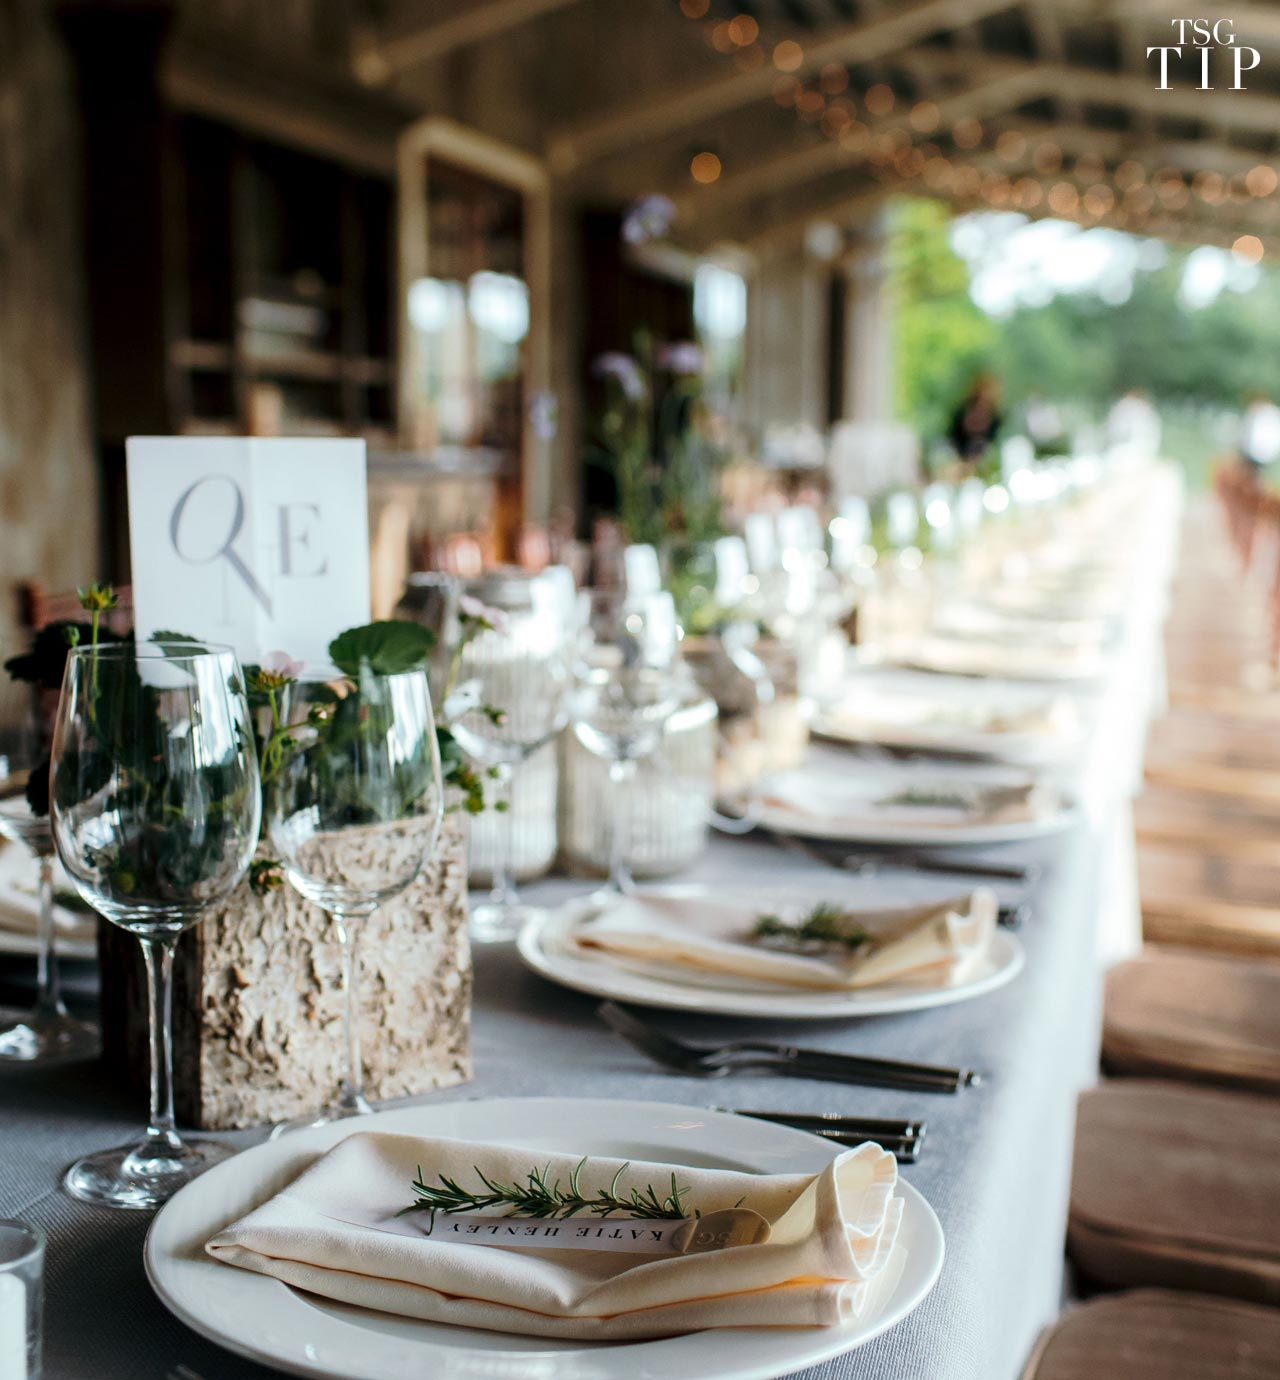 TSg Tip 156: Setting the Outdoor Table